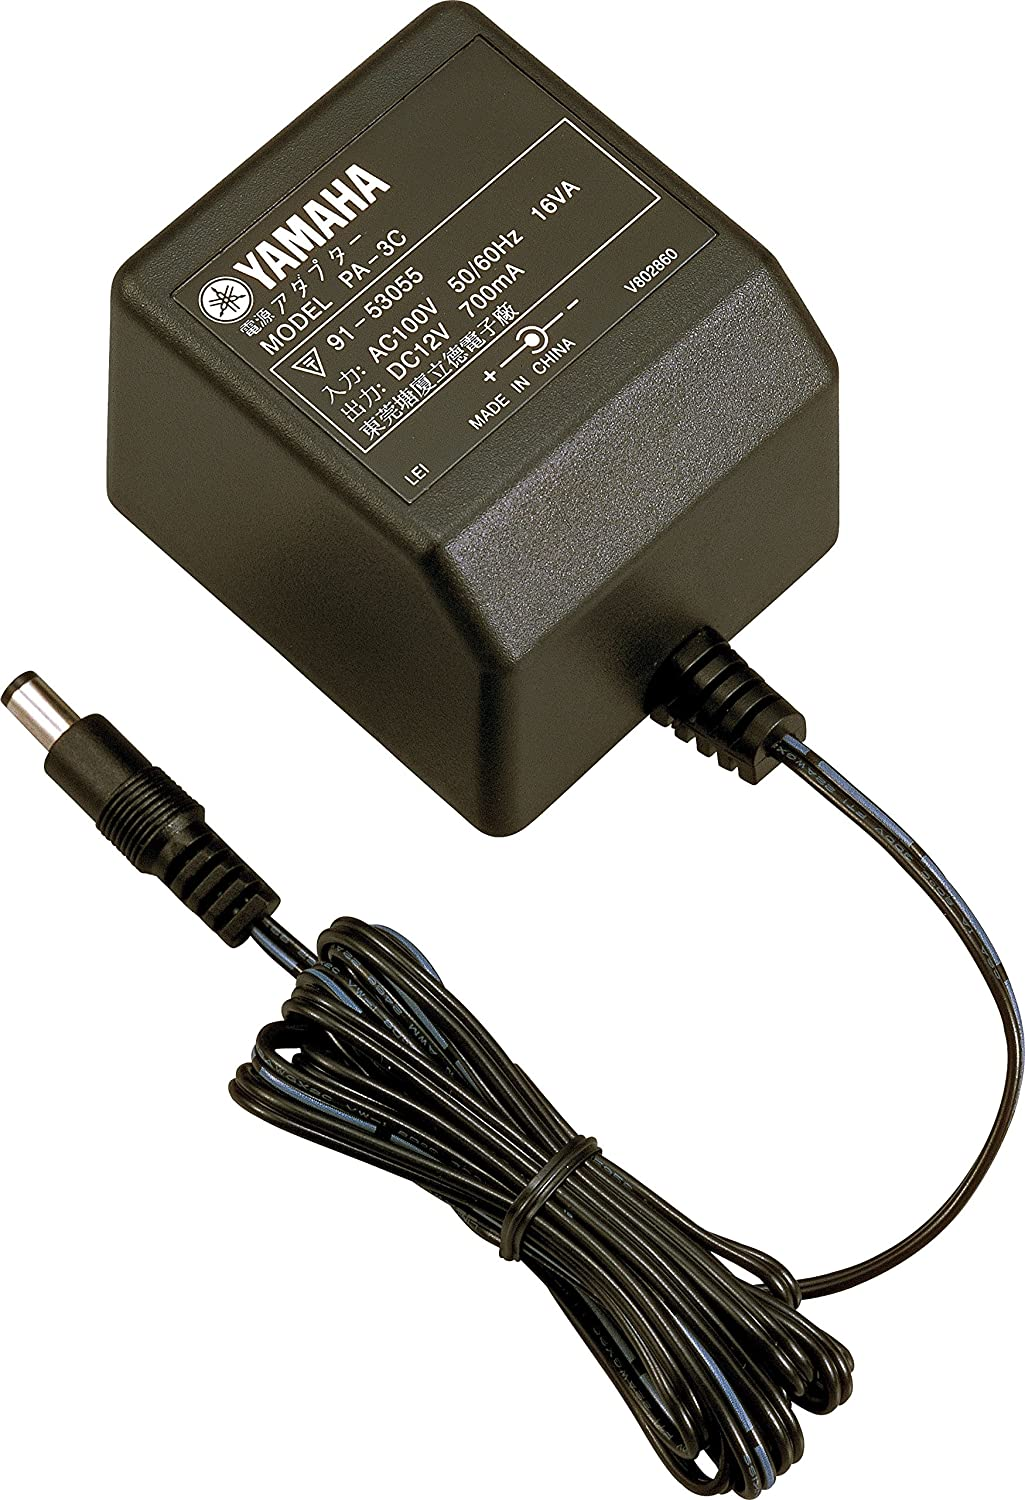 Genuine Yamaha AC Adapter Power Supply DC12V 700mA 12.5W Model: PA-3C 12V